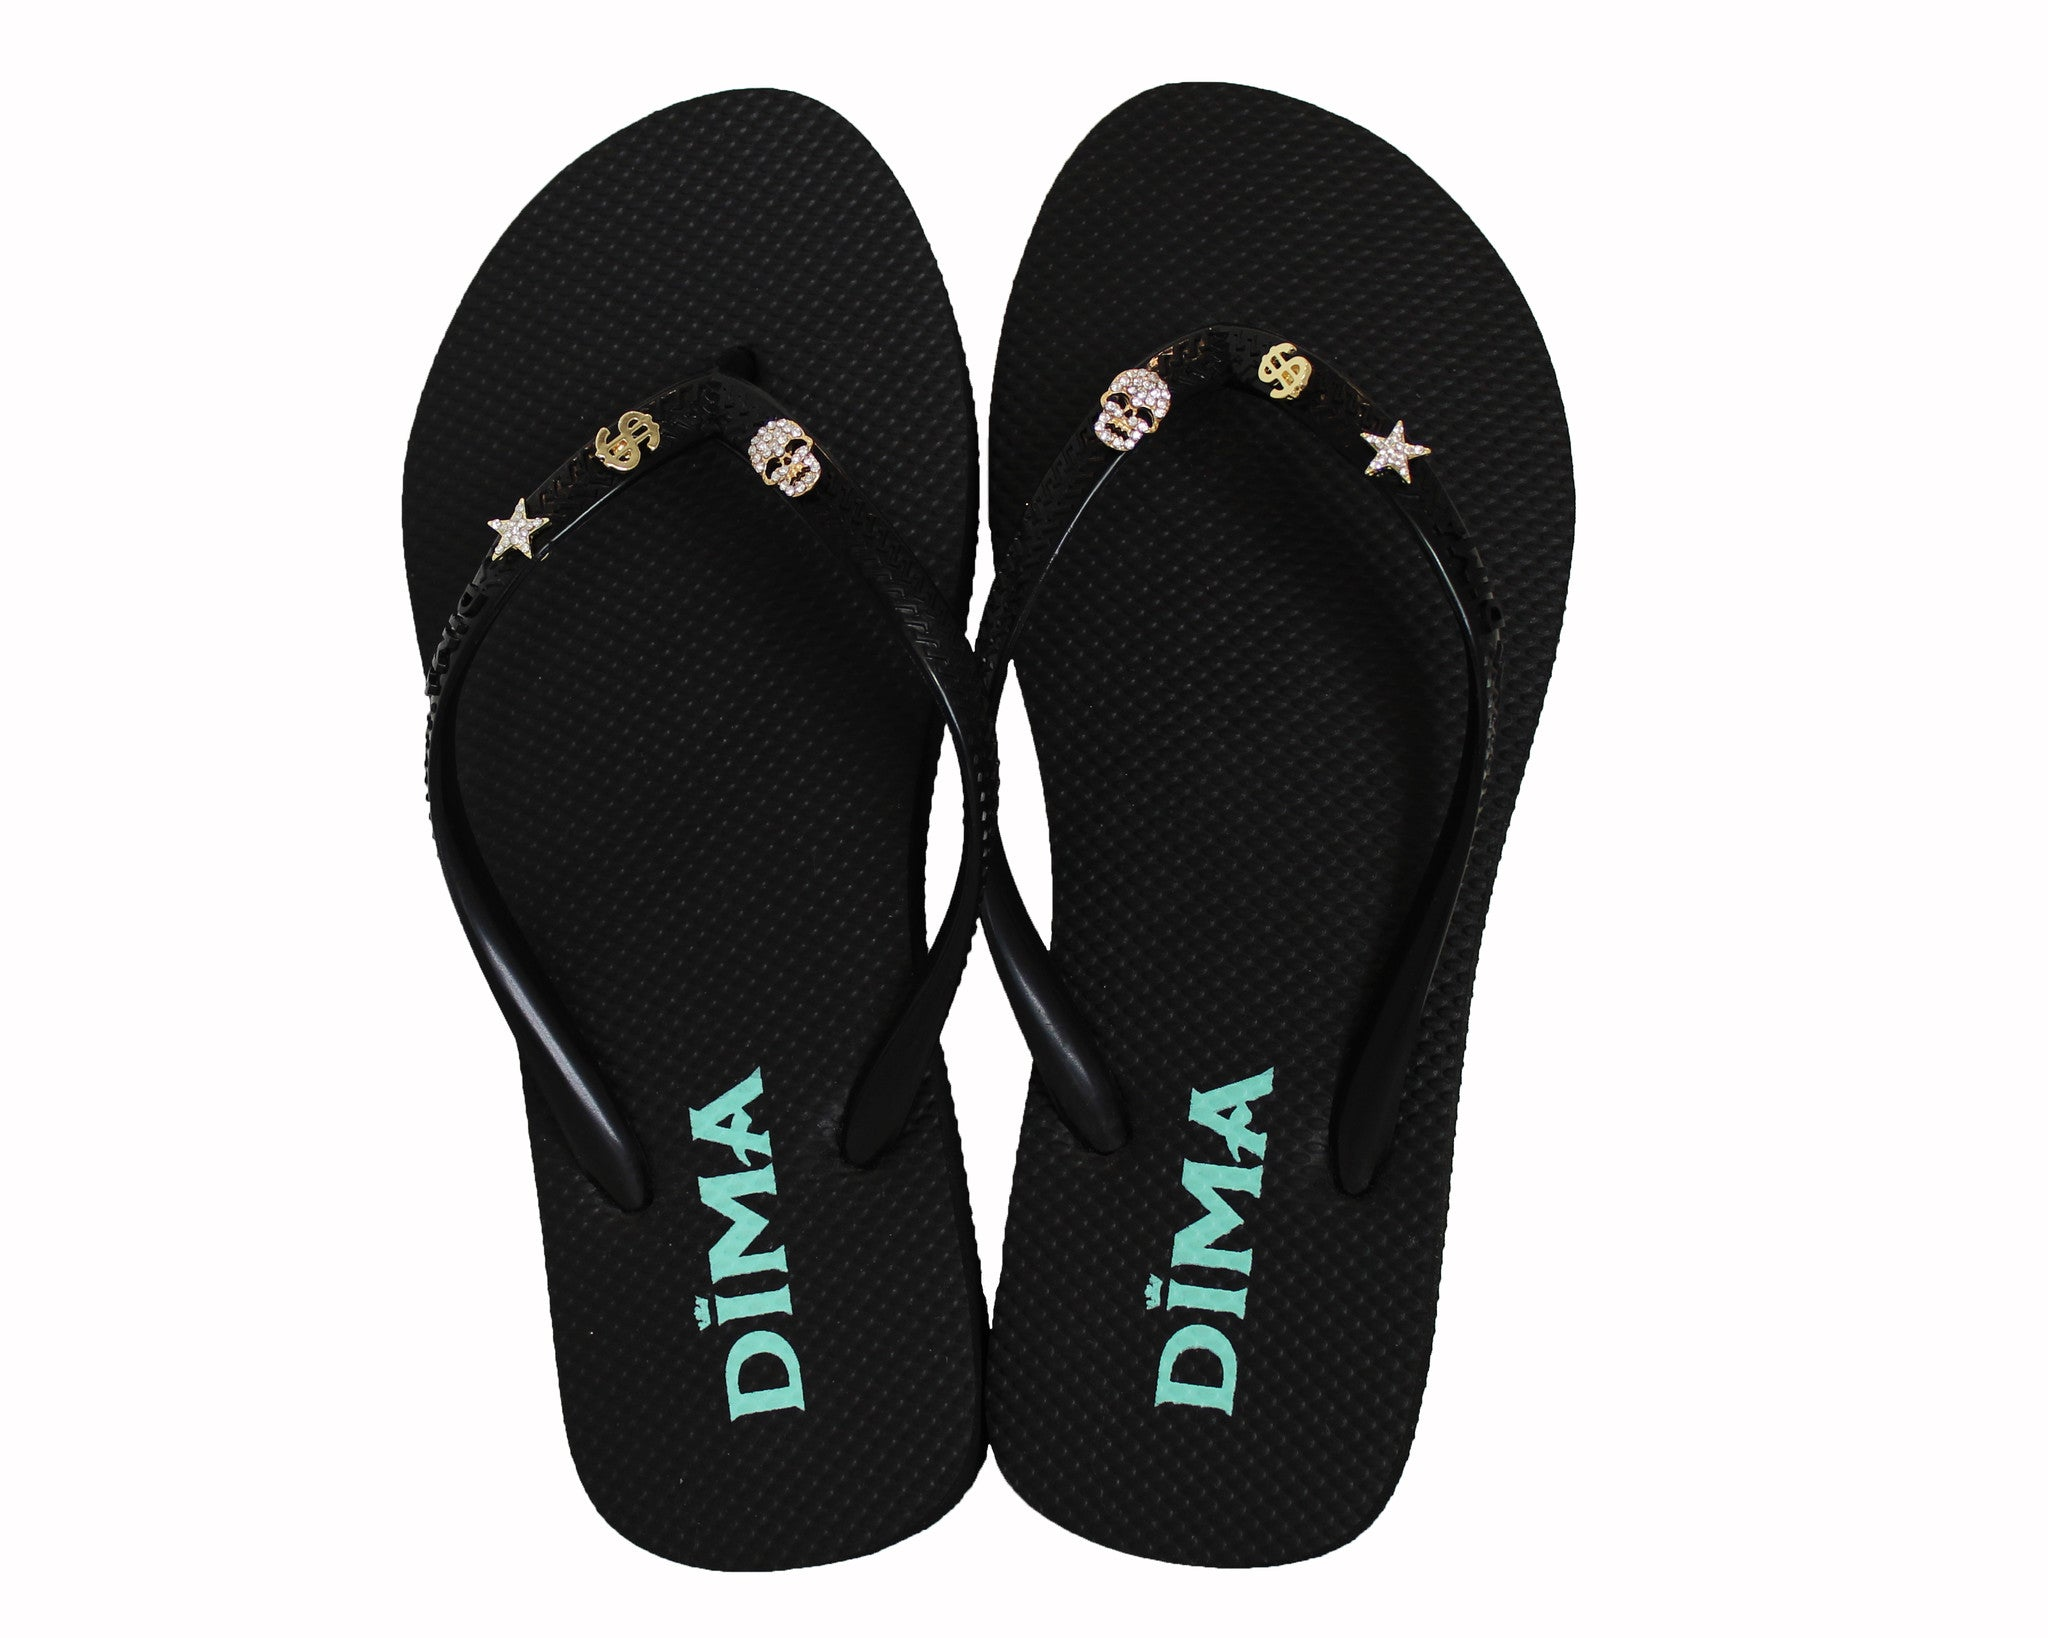 Skull money collection dima flip flops skull money collection publicscrutiny Image collections